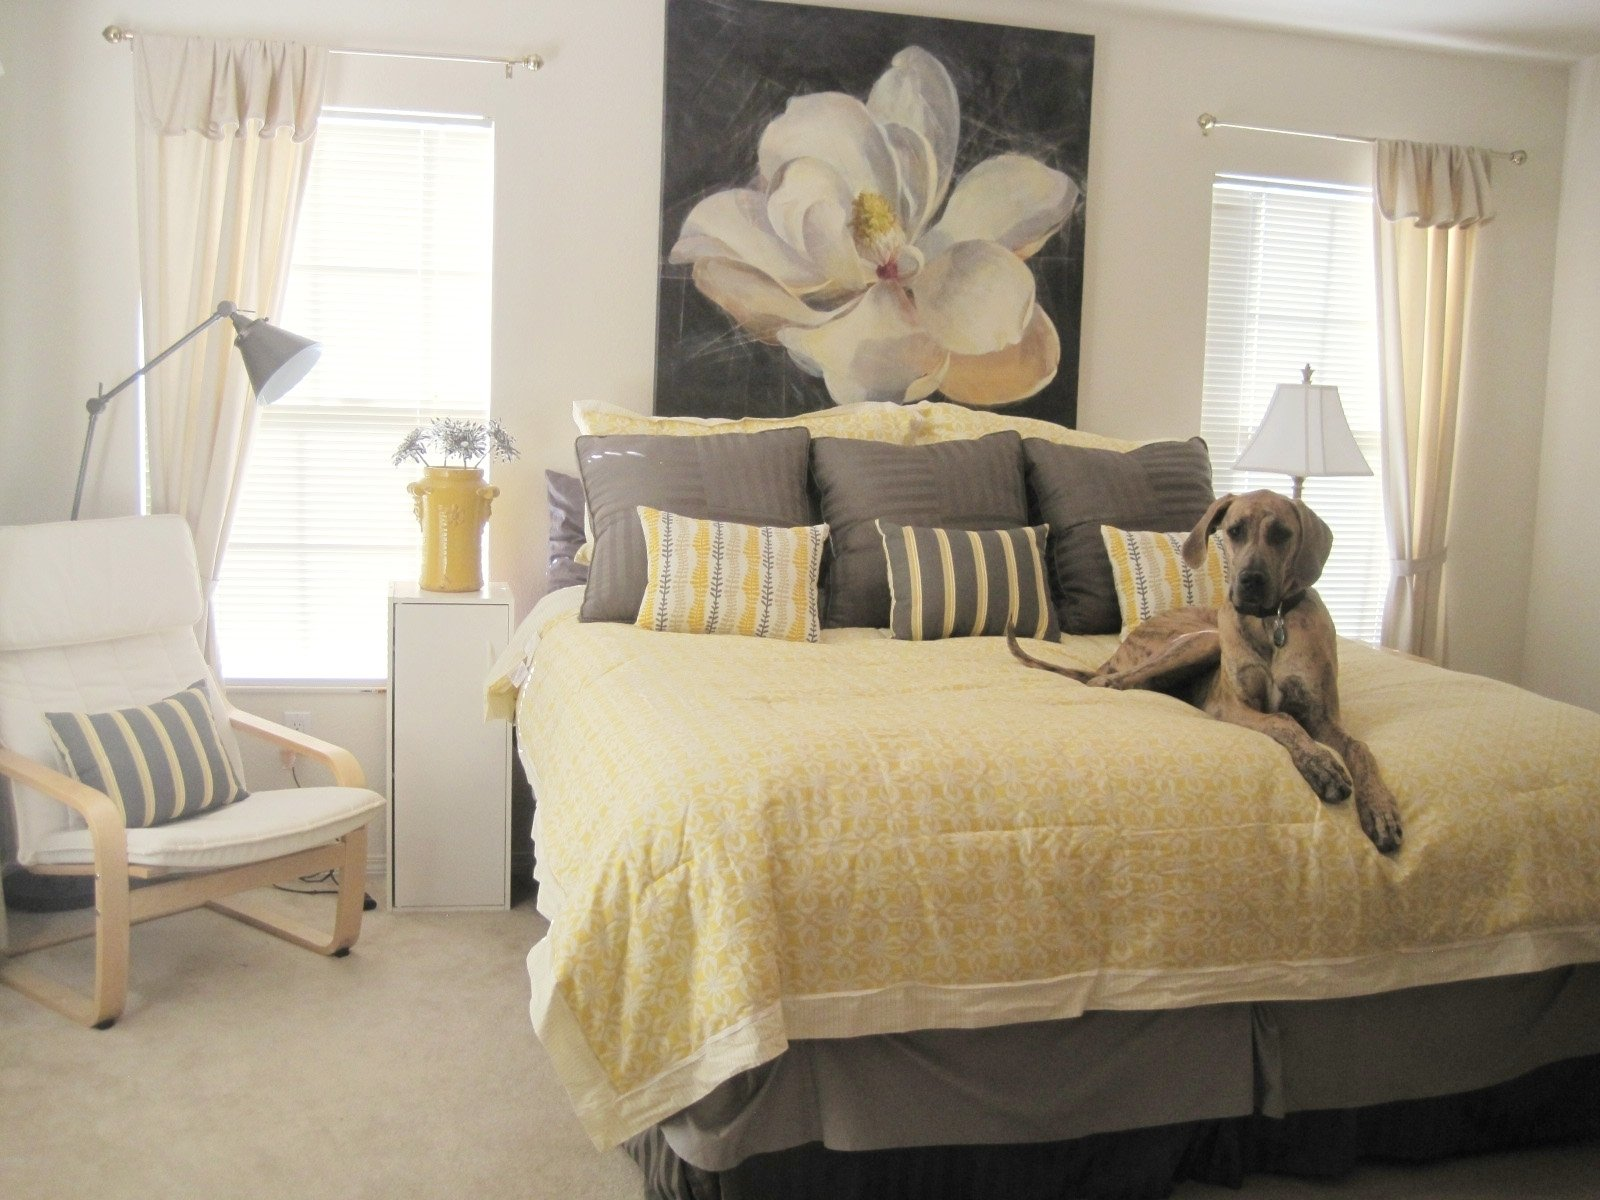 10 Attractive Yellow And Gray Bedroom Ideas blue yellow gray bedroom ideas e280a2 bedroom ideas 2020